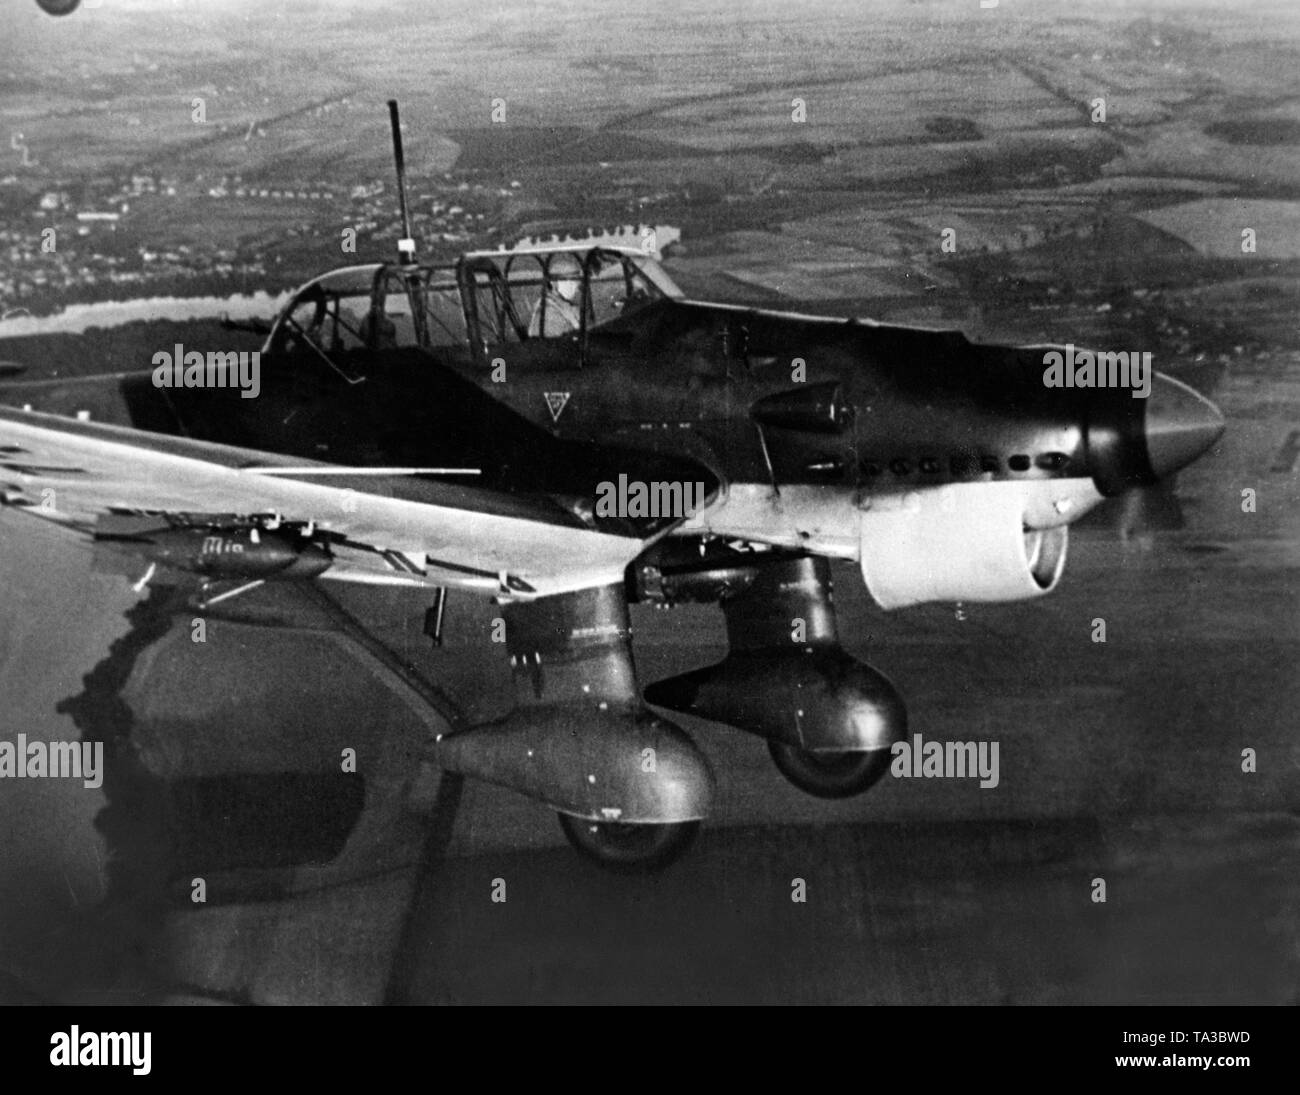 hight resolution of a dive bomber of the type junkers ju 87 in deployment in france stock